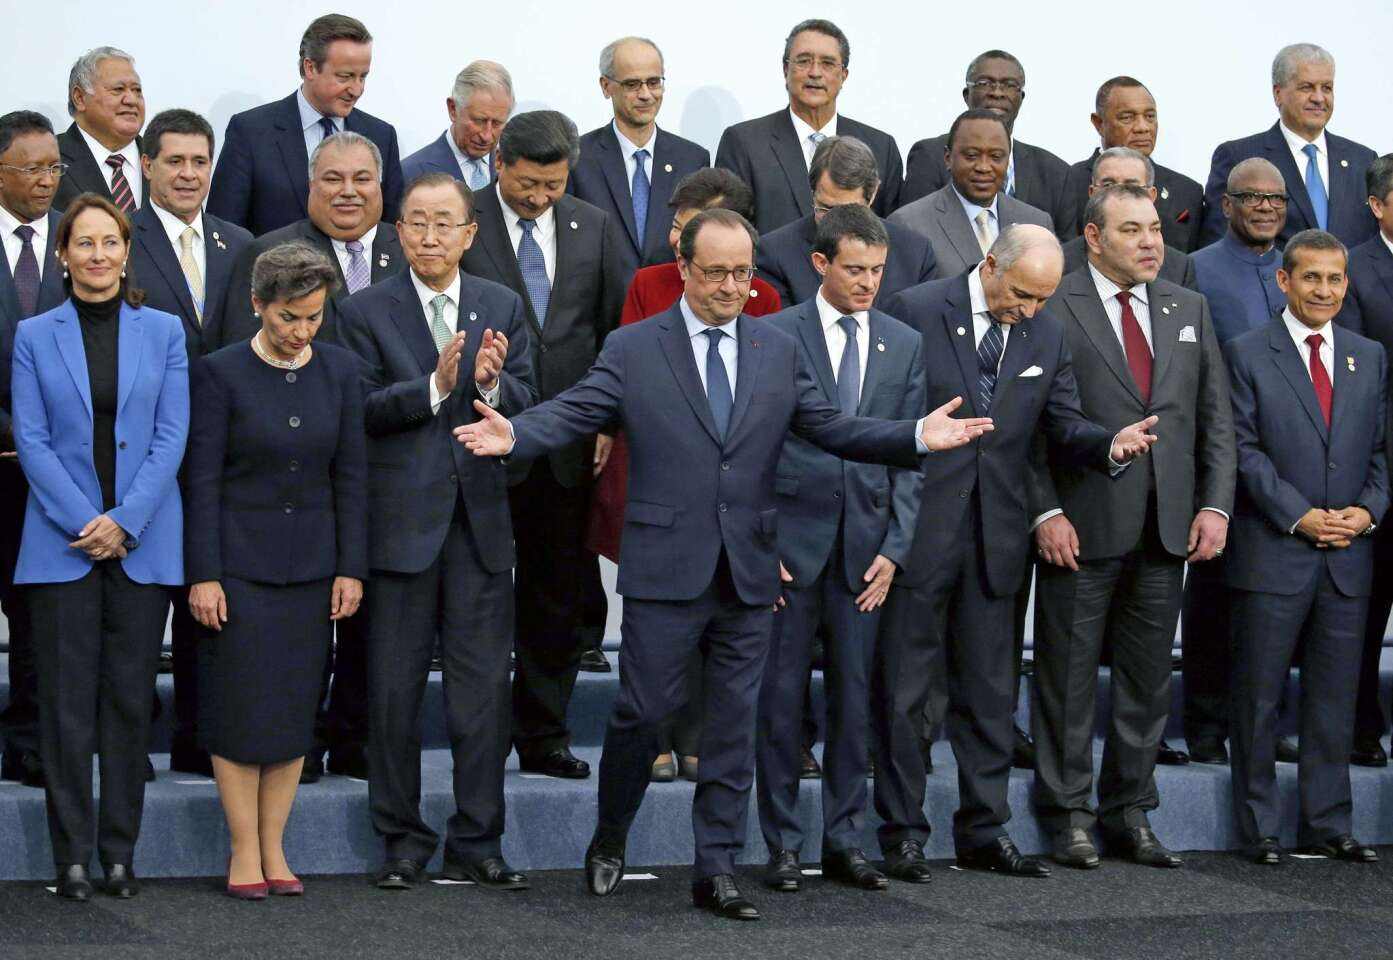 French President Francois Hollande gestures when posing with world leaders for a photo during the opening day of the World Climate Change Conference 2015 near Paris.